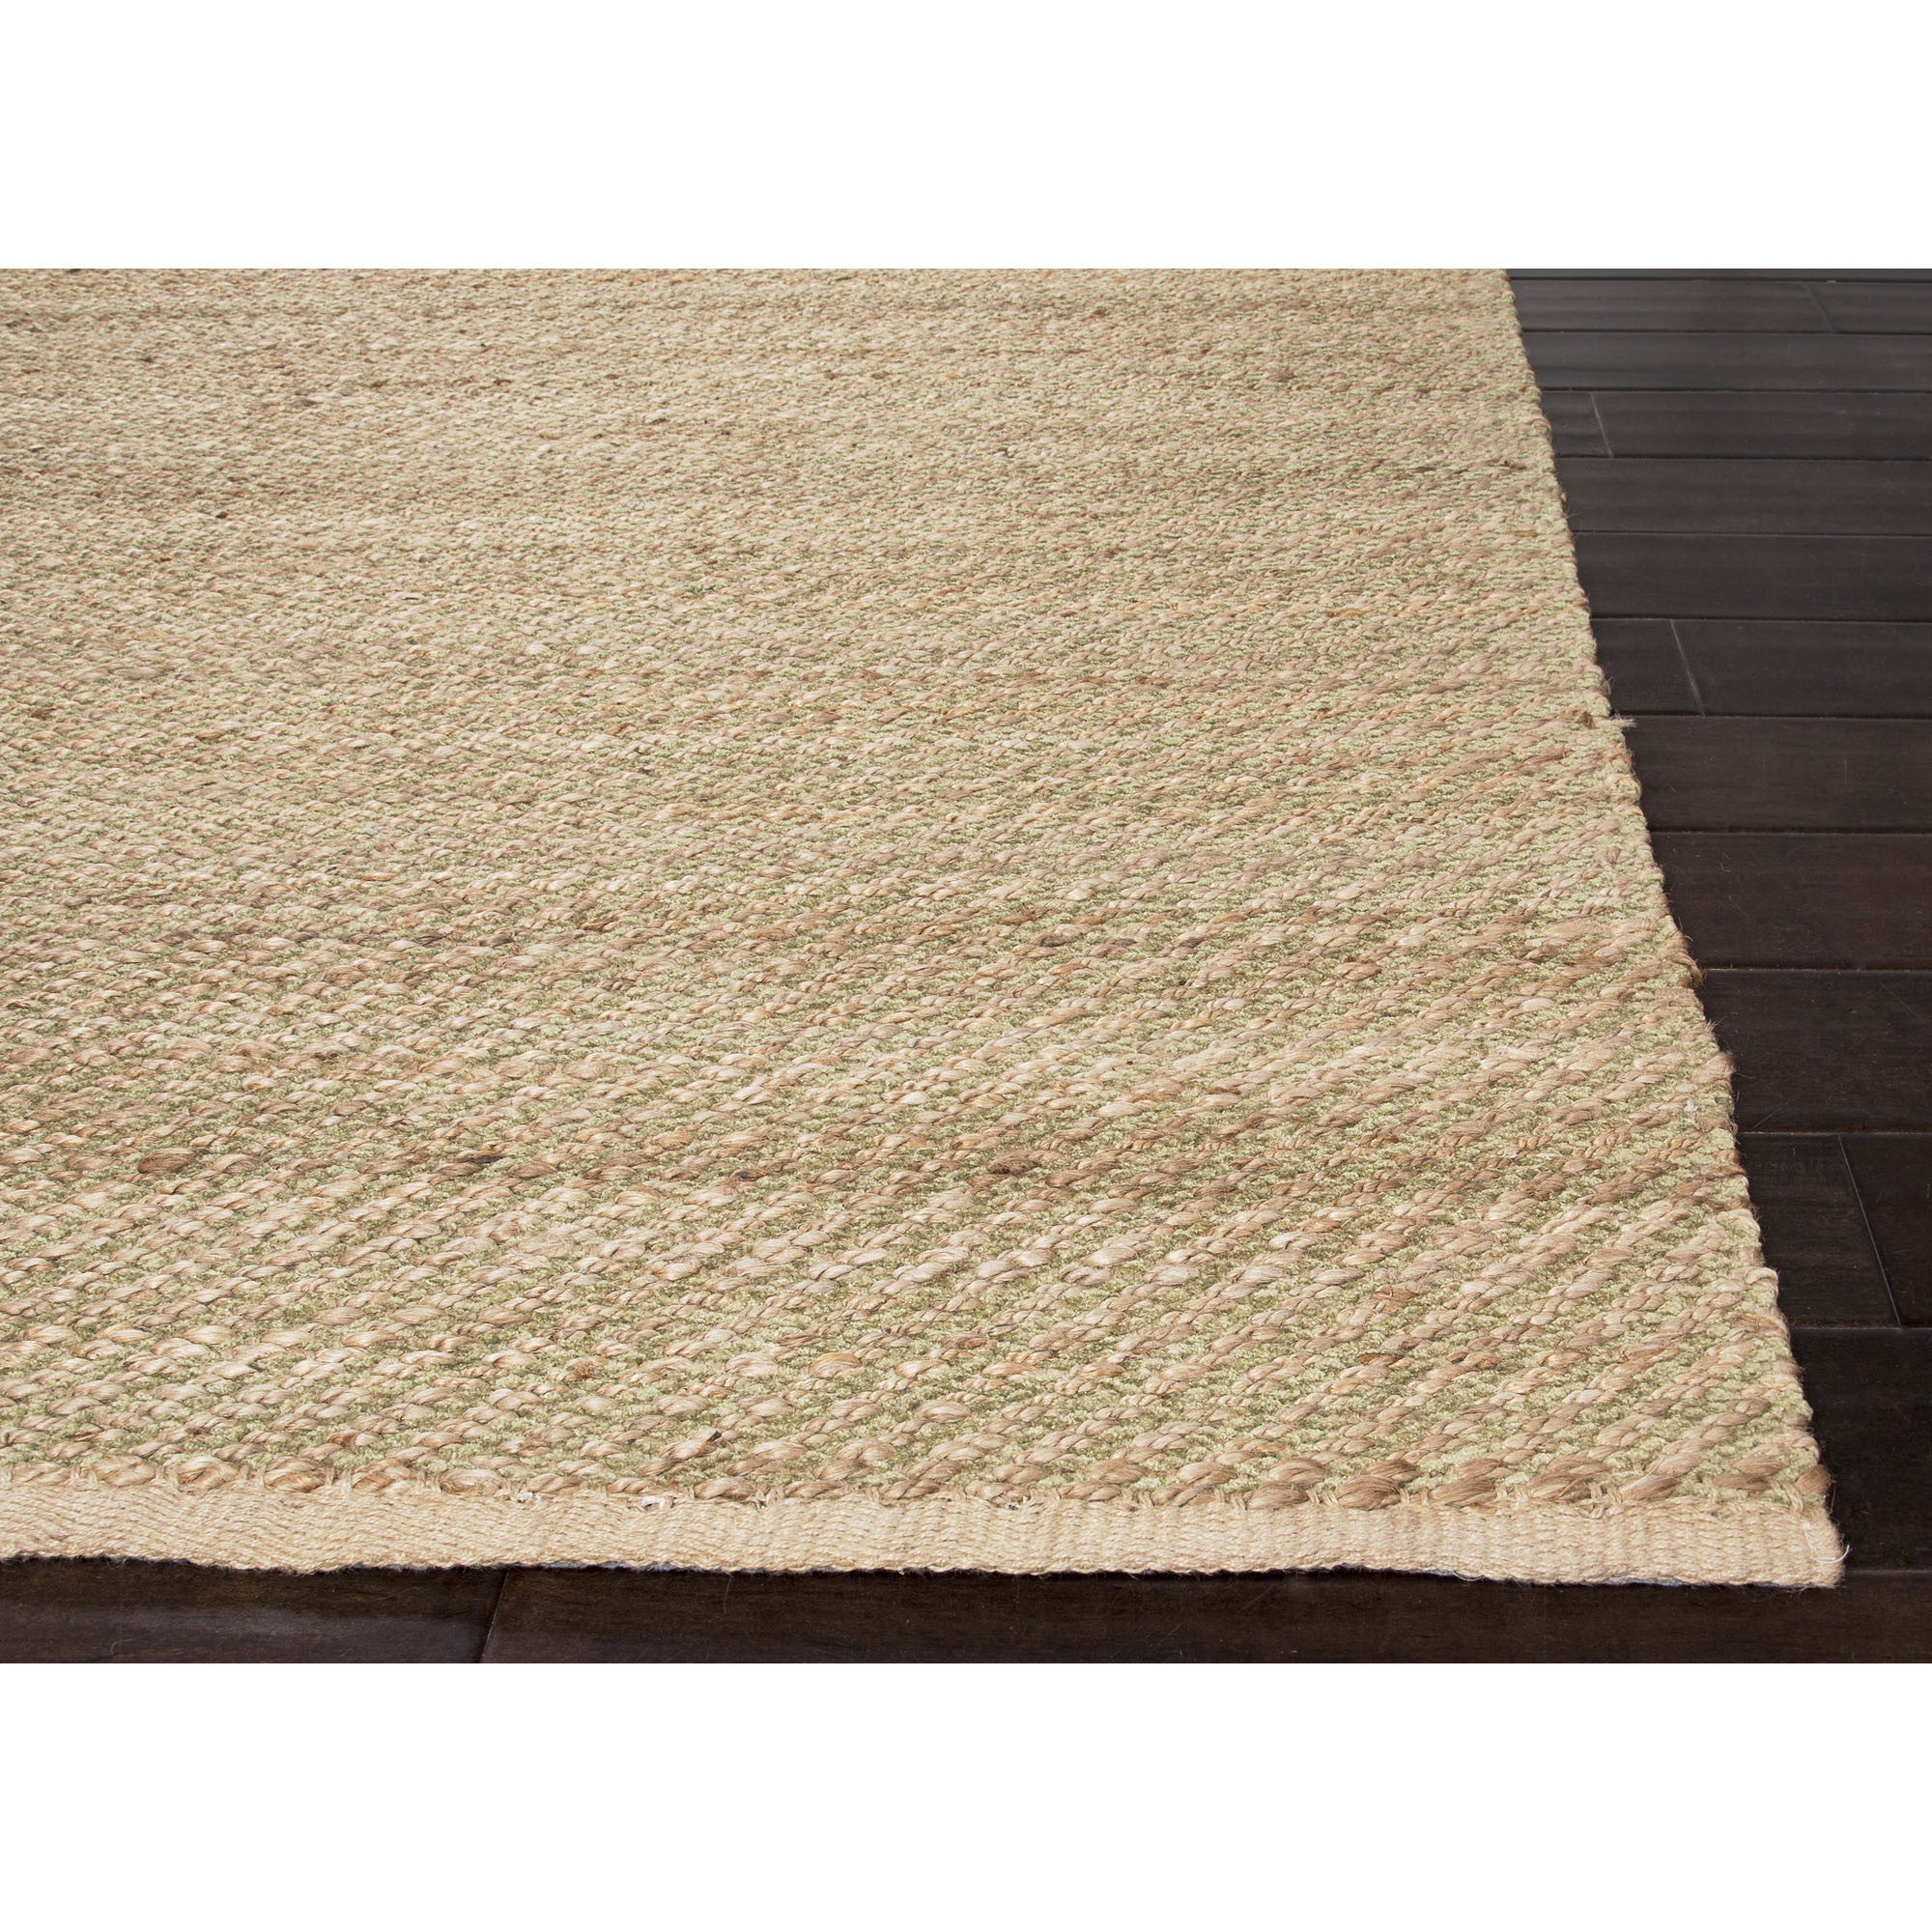 Jaipur Rugs Naturals Solid Pattern Taupe Tan Jute And